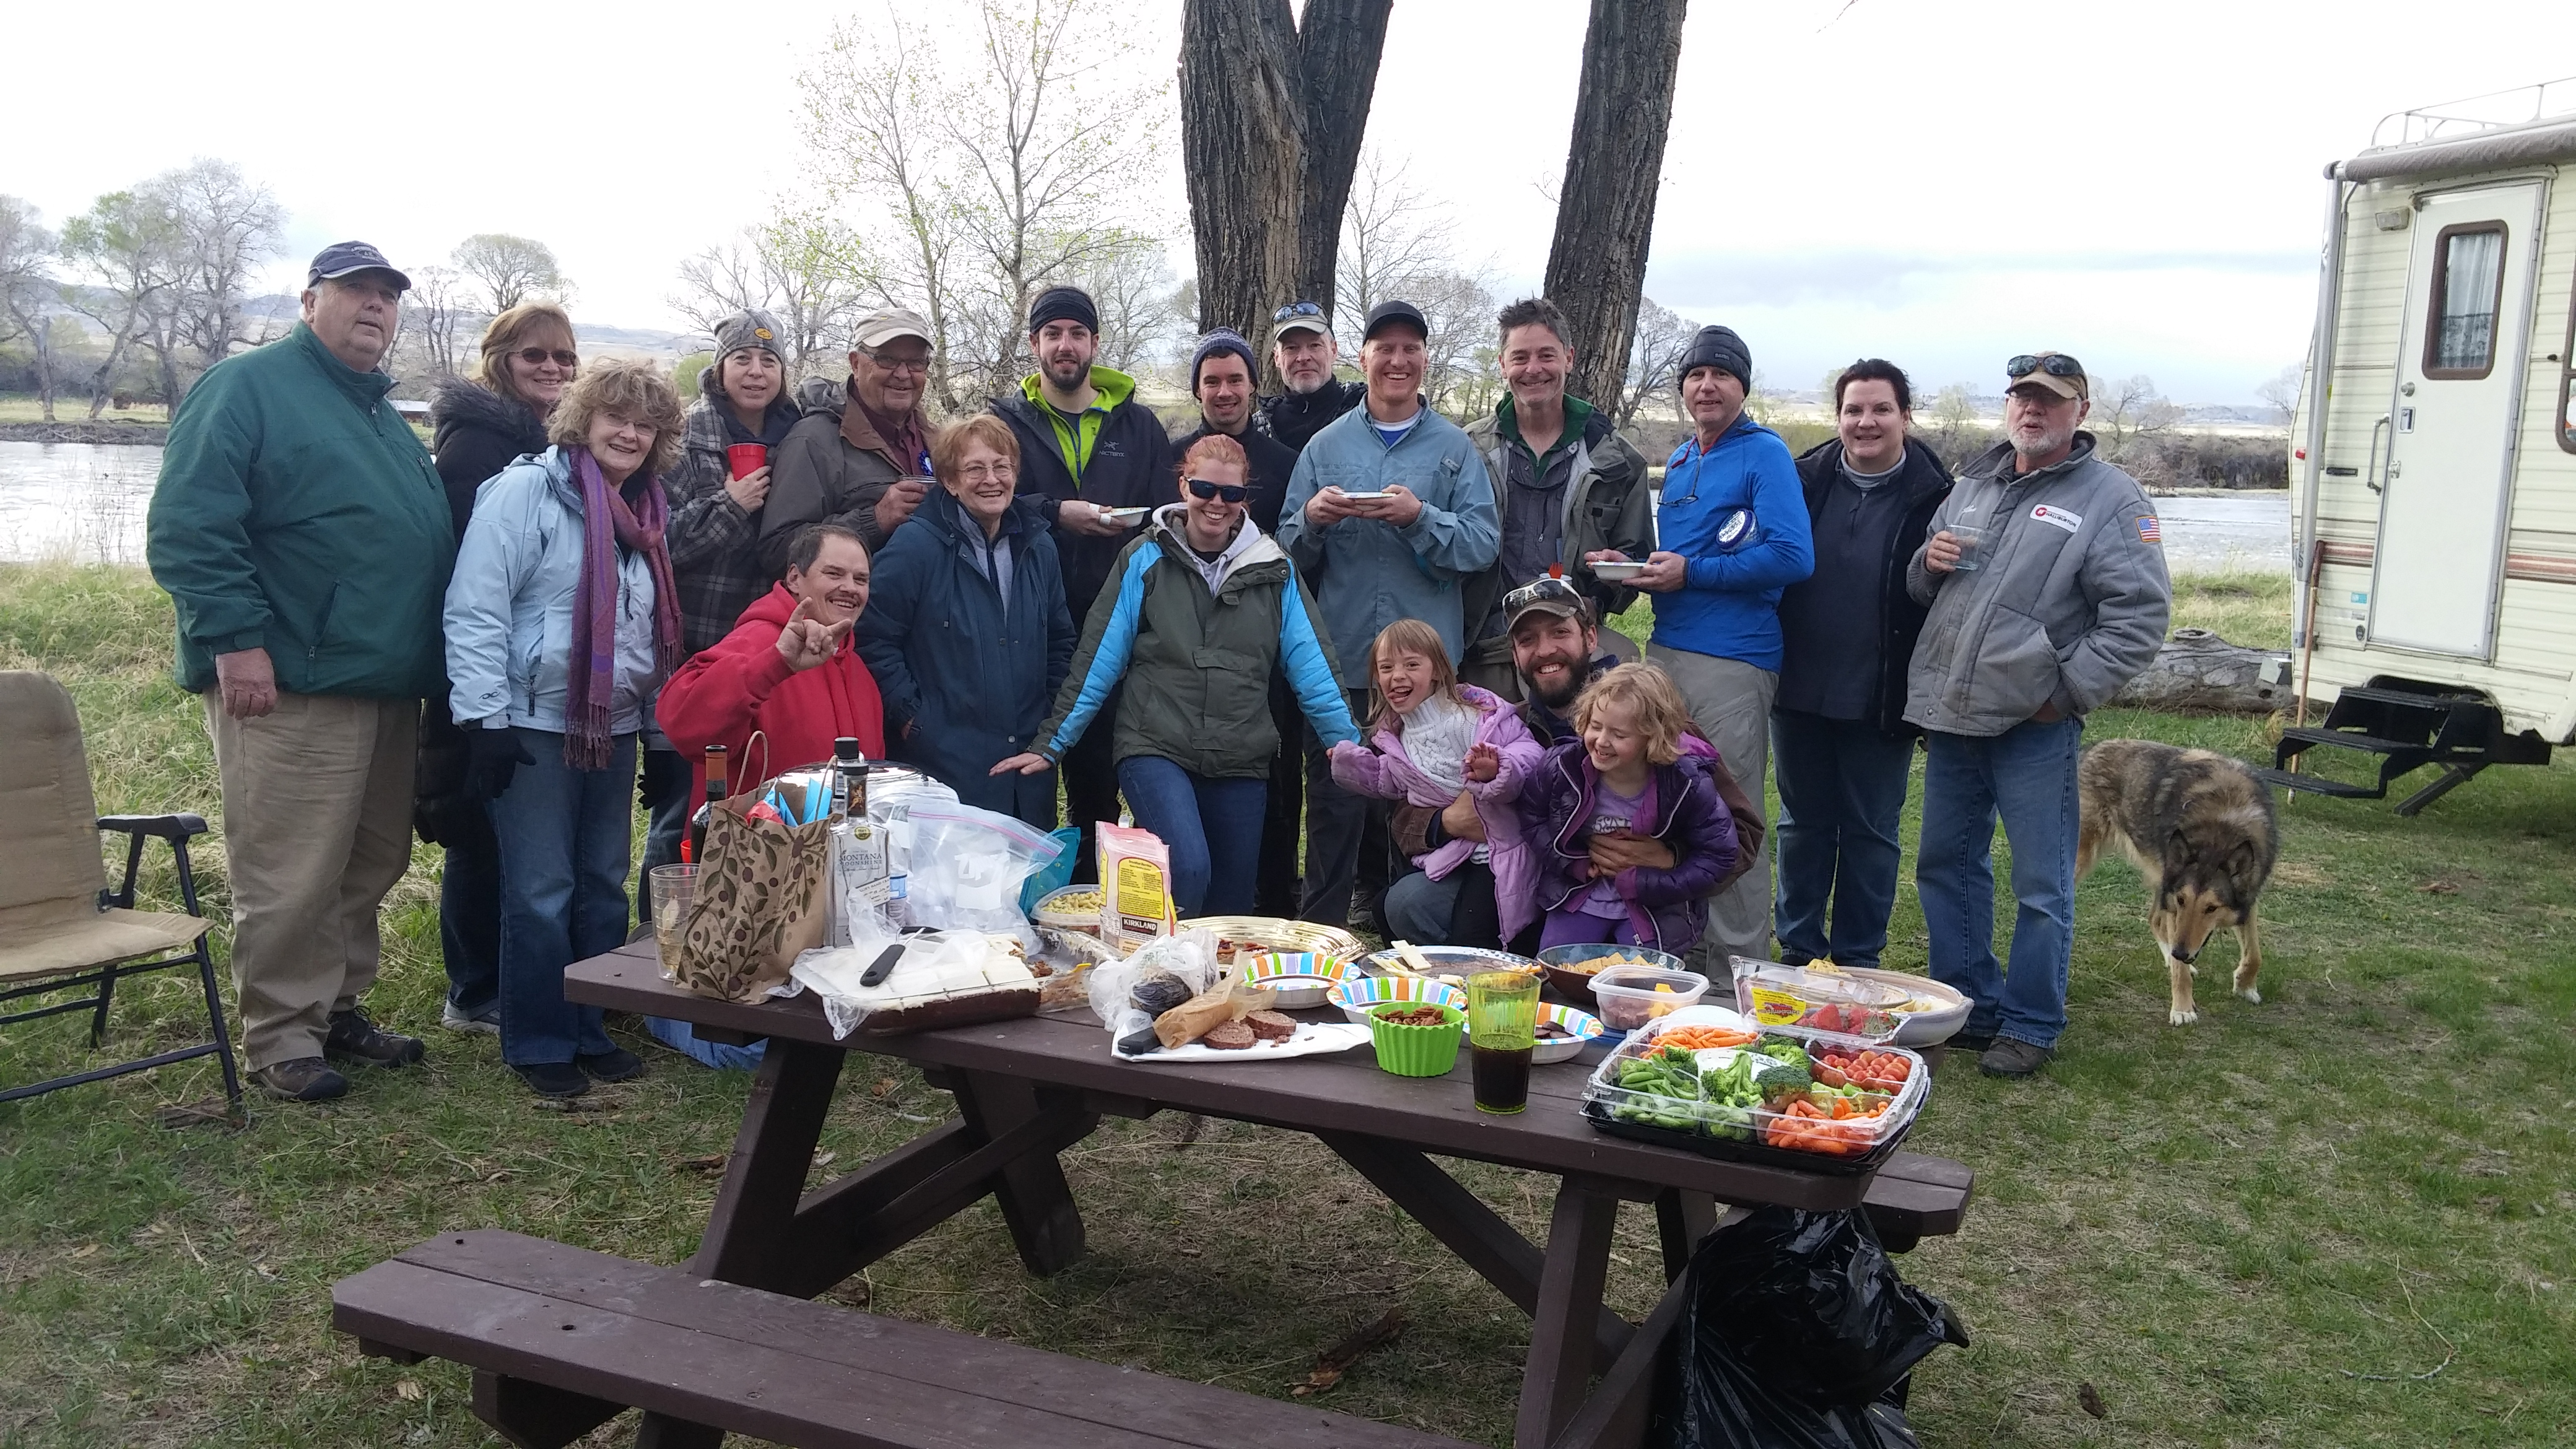 The Montana Unit joined by friends and members of Backpacking Light from Bozeman.